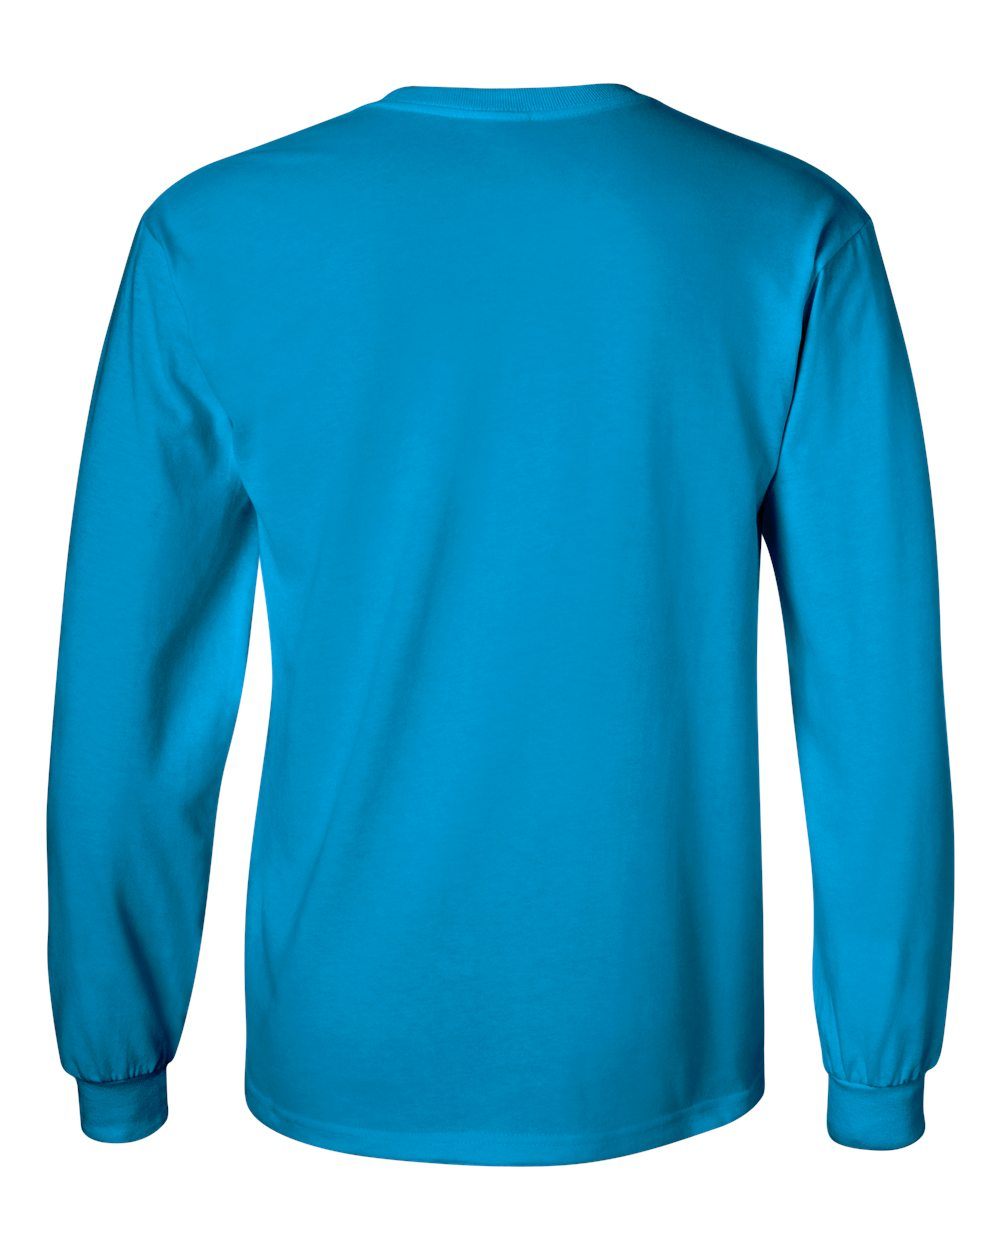 Gildan-Men-039-s-Ultra-Cotton-6-oz-Long-Sleeve-T-Shirt-G240-S-5XL thumbnail 100